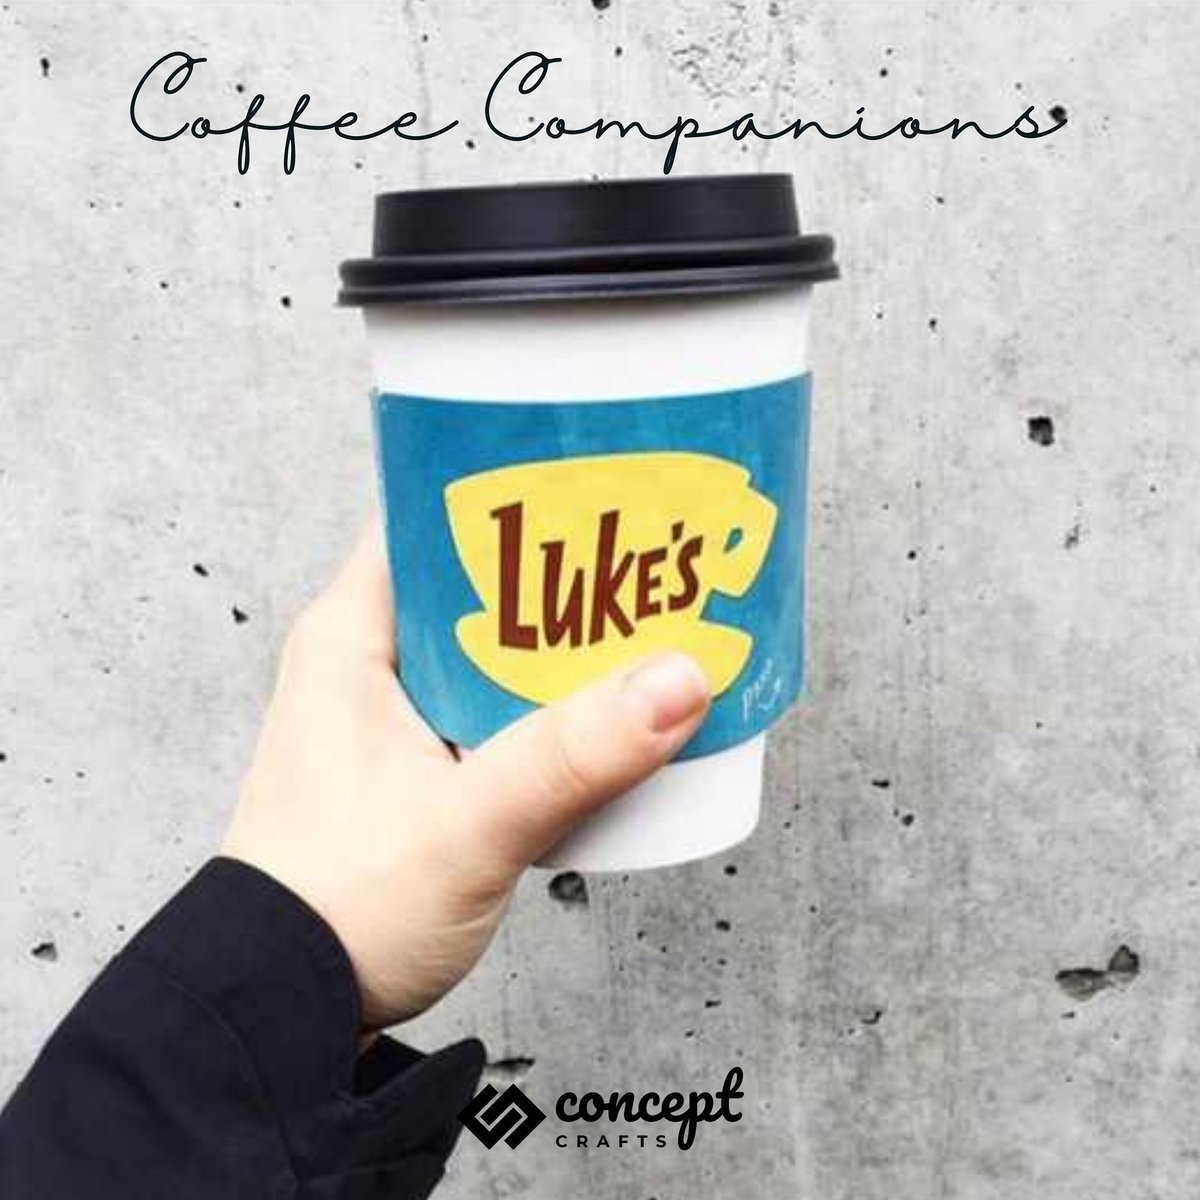 Coffee Companions #2 - Gilmore Girls  Relax with a cup of joe and binge on the coffee-fanatical Gilmore Girls as the fiercely independent, strong female protagonists manage work, love and life in this quirky, witty drama.   #thursdayvibes #GilmoreGirls #coffeecompanions